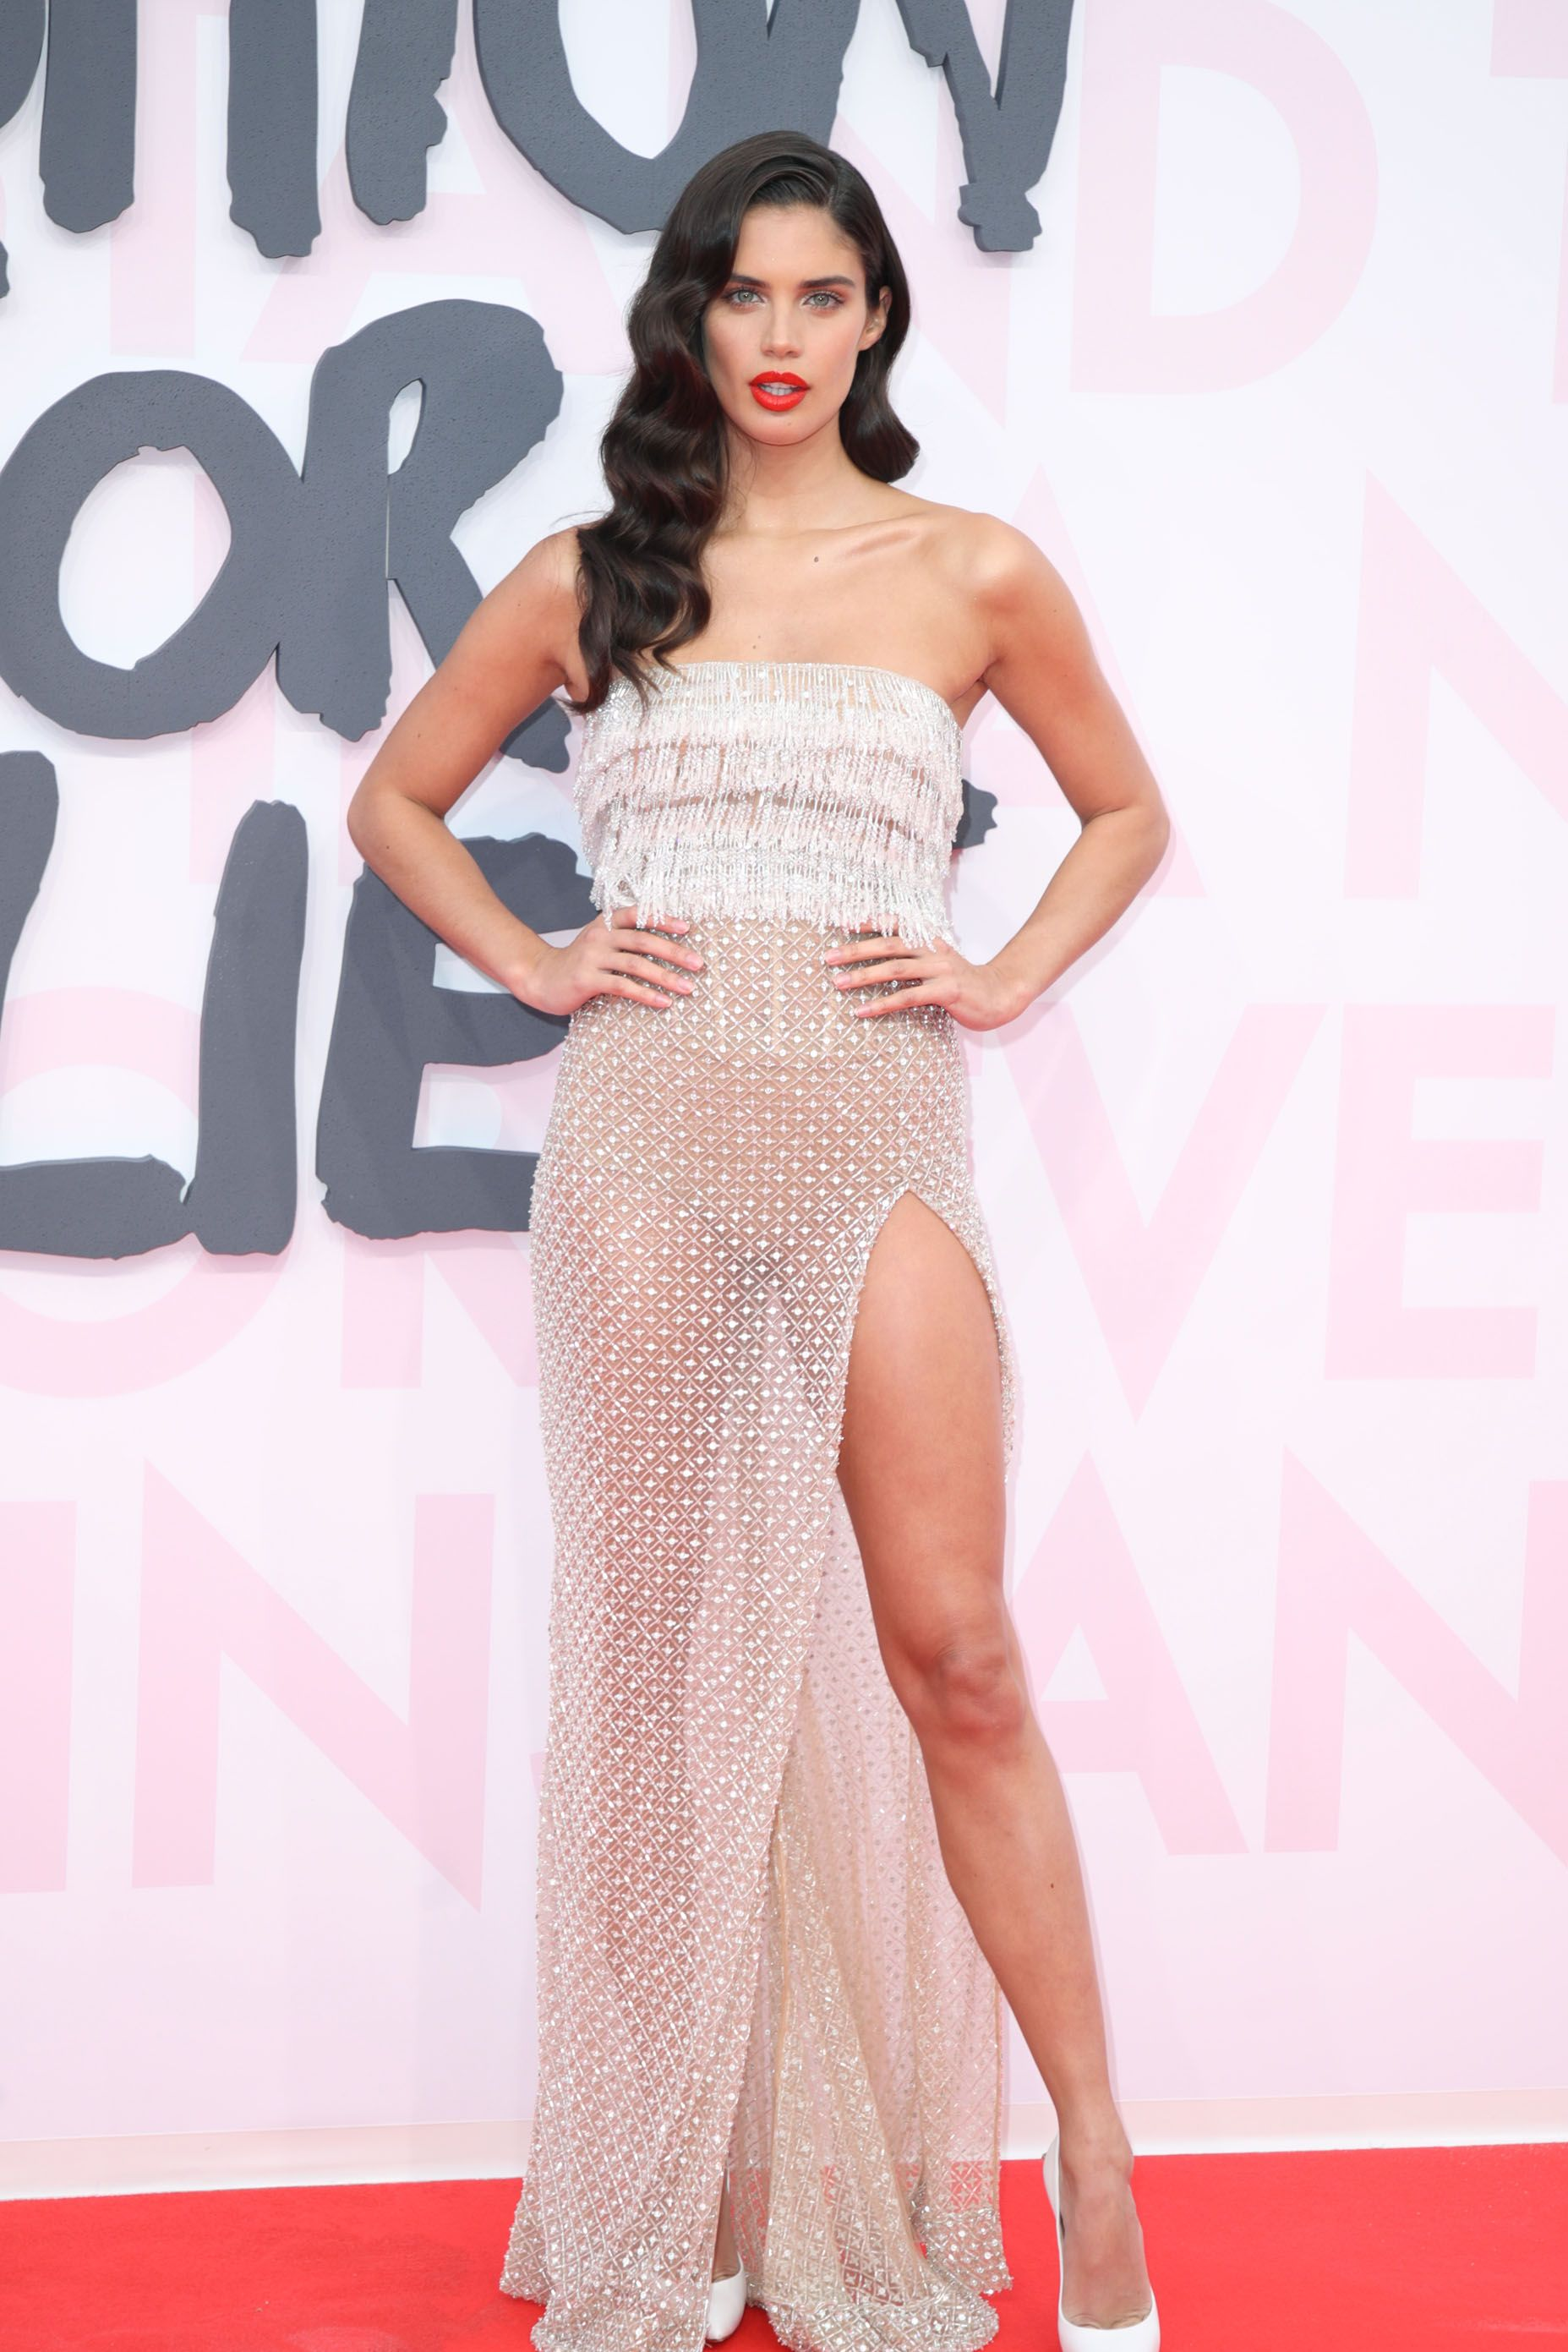 Sara Sampaio On May 13, Sampaio attended the Fashion For Relief party in Cannes, France. The model chose a Roberto Cavalli dress that was covered on top, but completely see-through on the bottom.